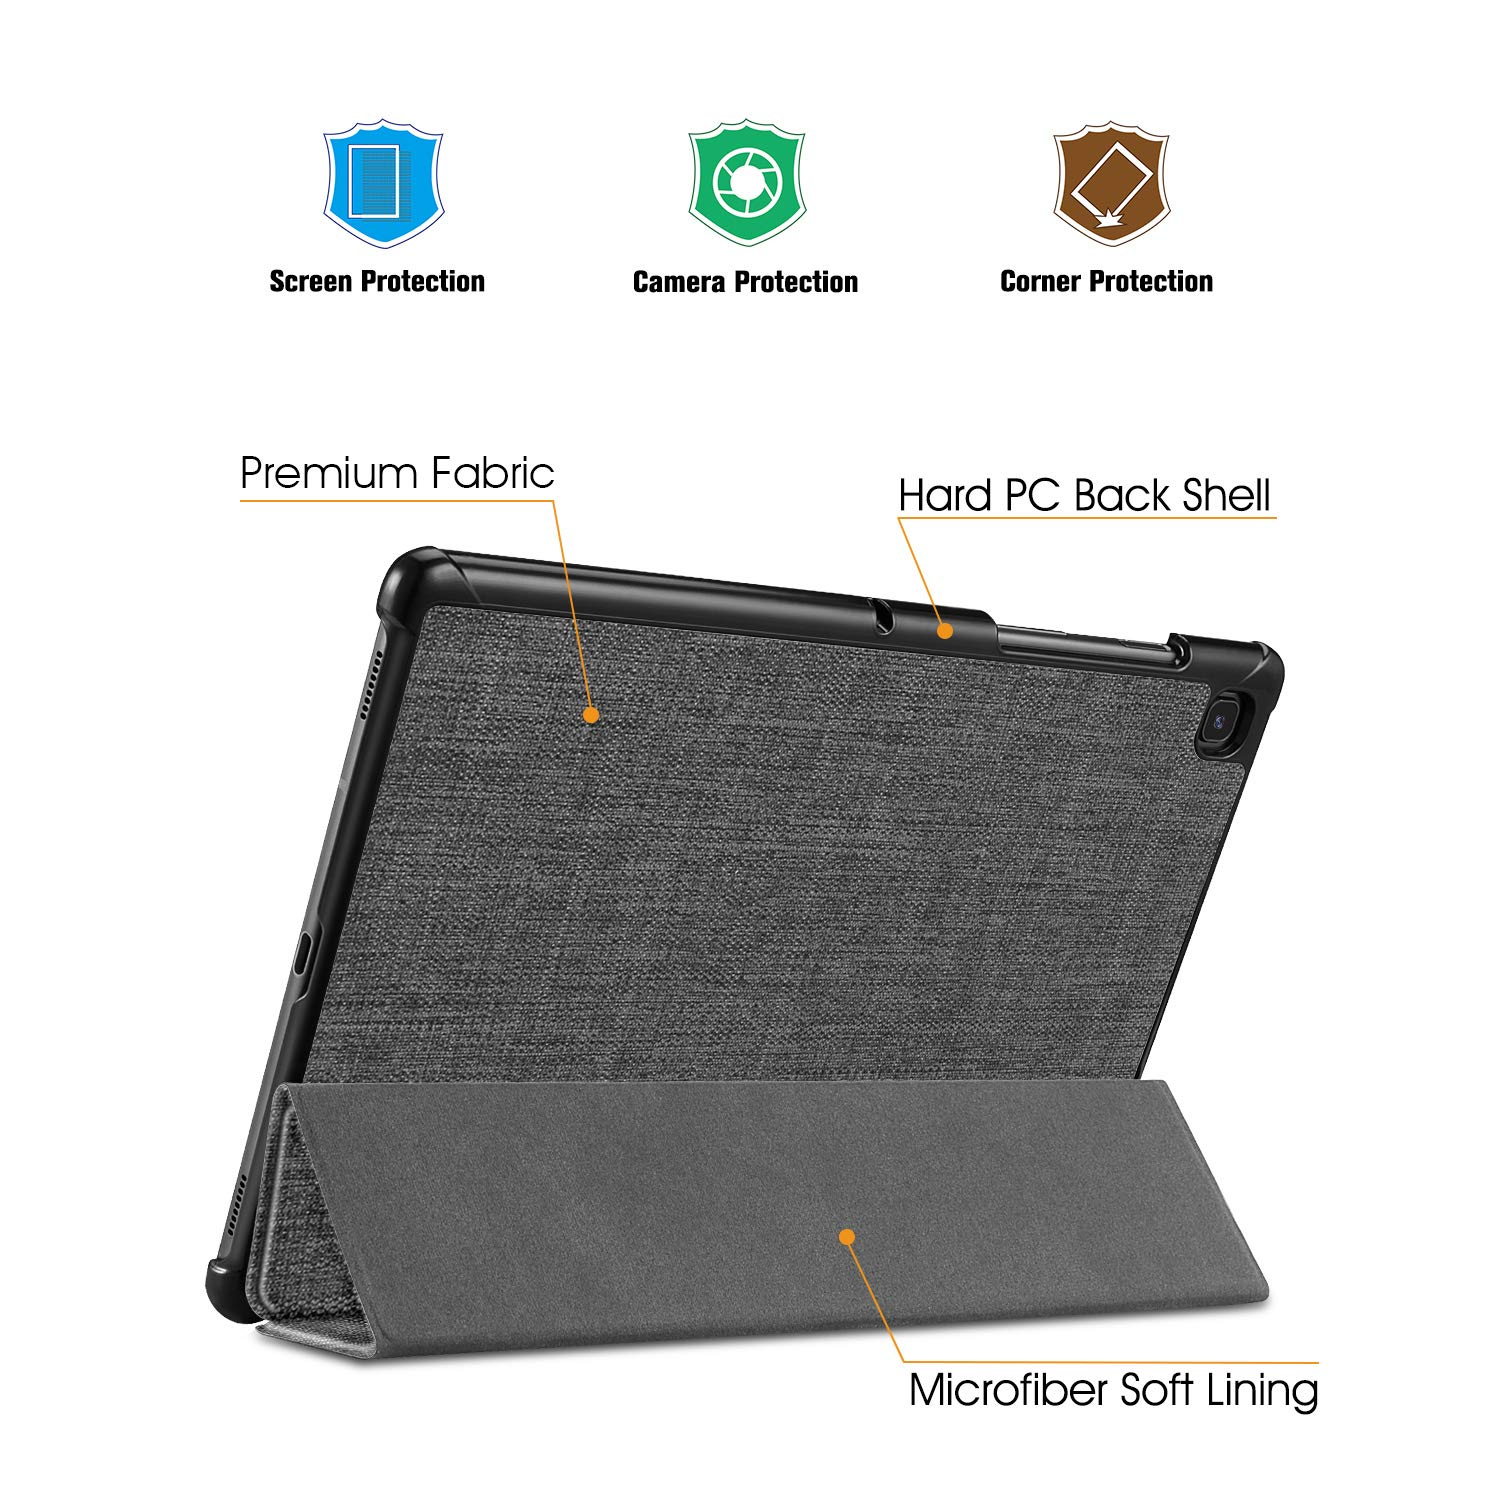 FINTIE SlimShell Case for Samsung Galaxy Tab S5e 10.5 2019 Model SM-T720 Super Thin Lightweight Stand Cover with Auto Sleep//Wake Feature T725 Galaxy